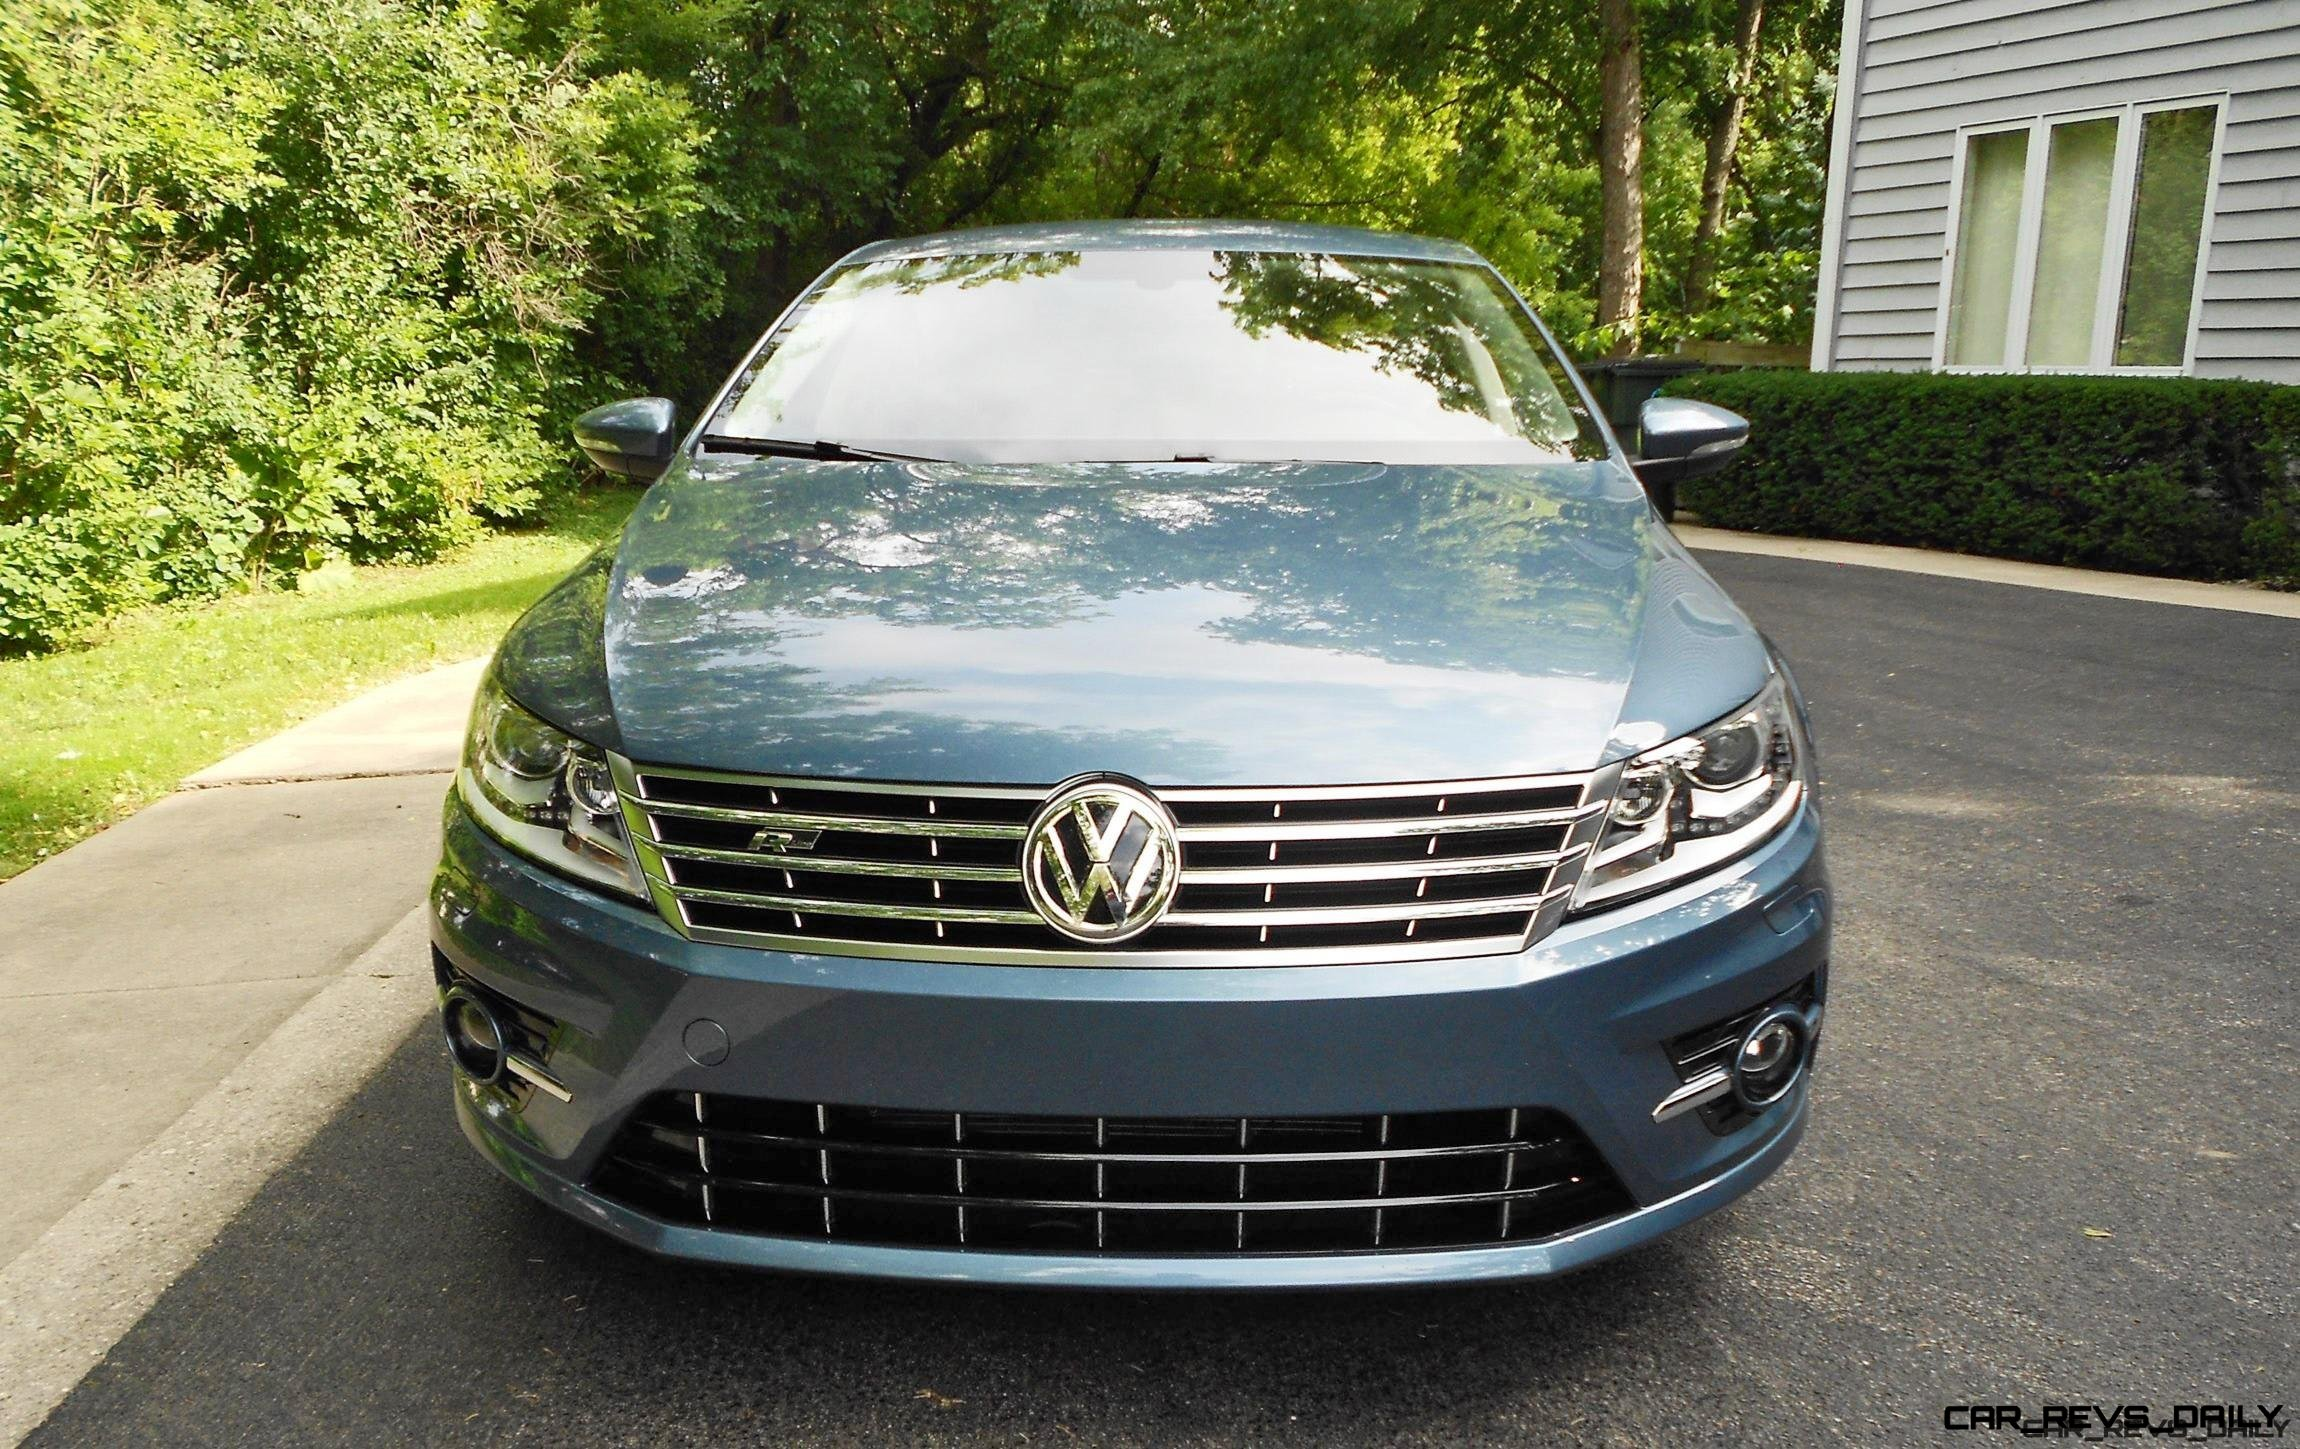 2016 Volkswagen Passat Cc 2 0t R Line Road Test Review By Ken Hawkeye Glassman Car Revs Daily Com